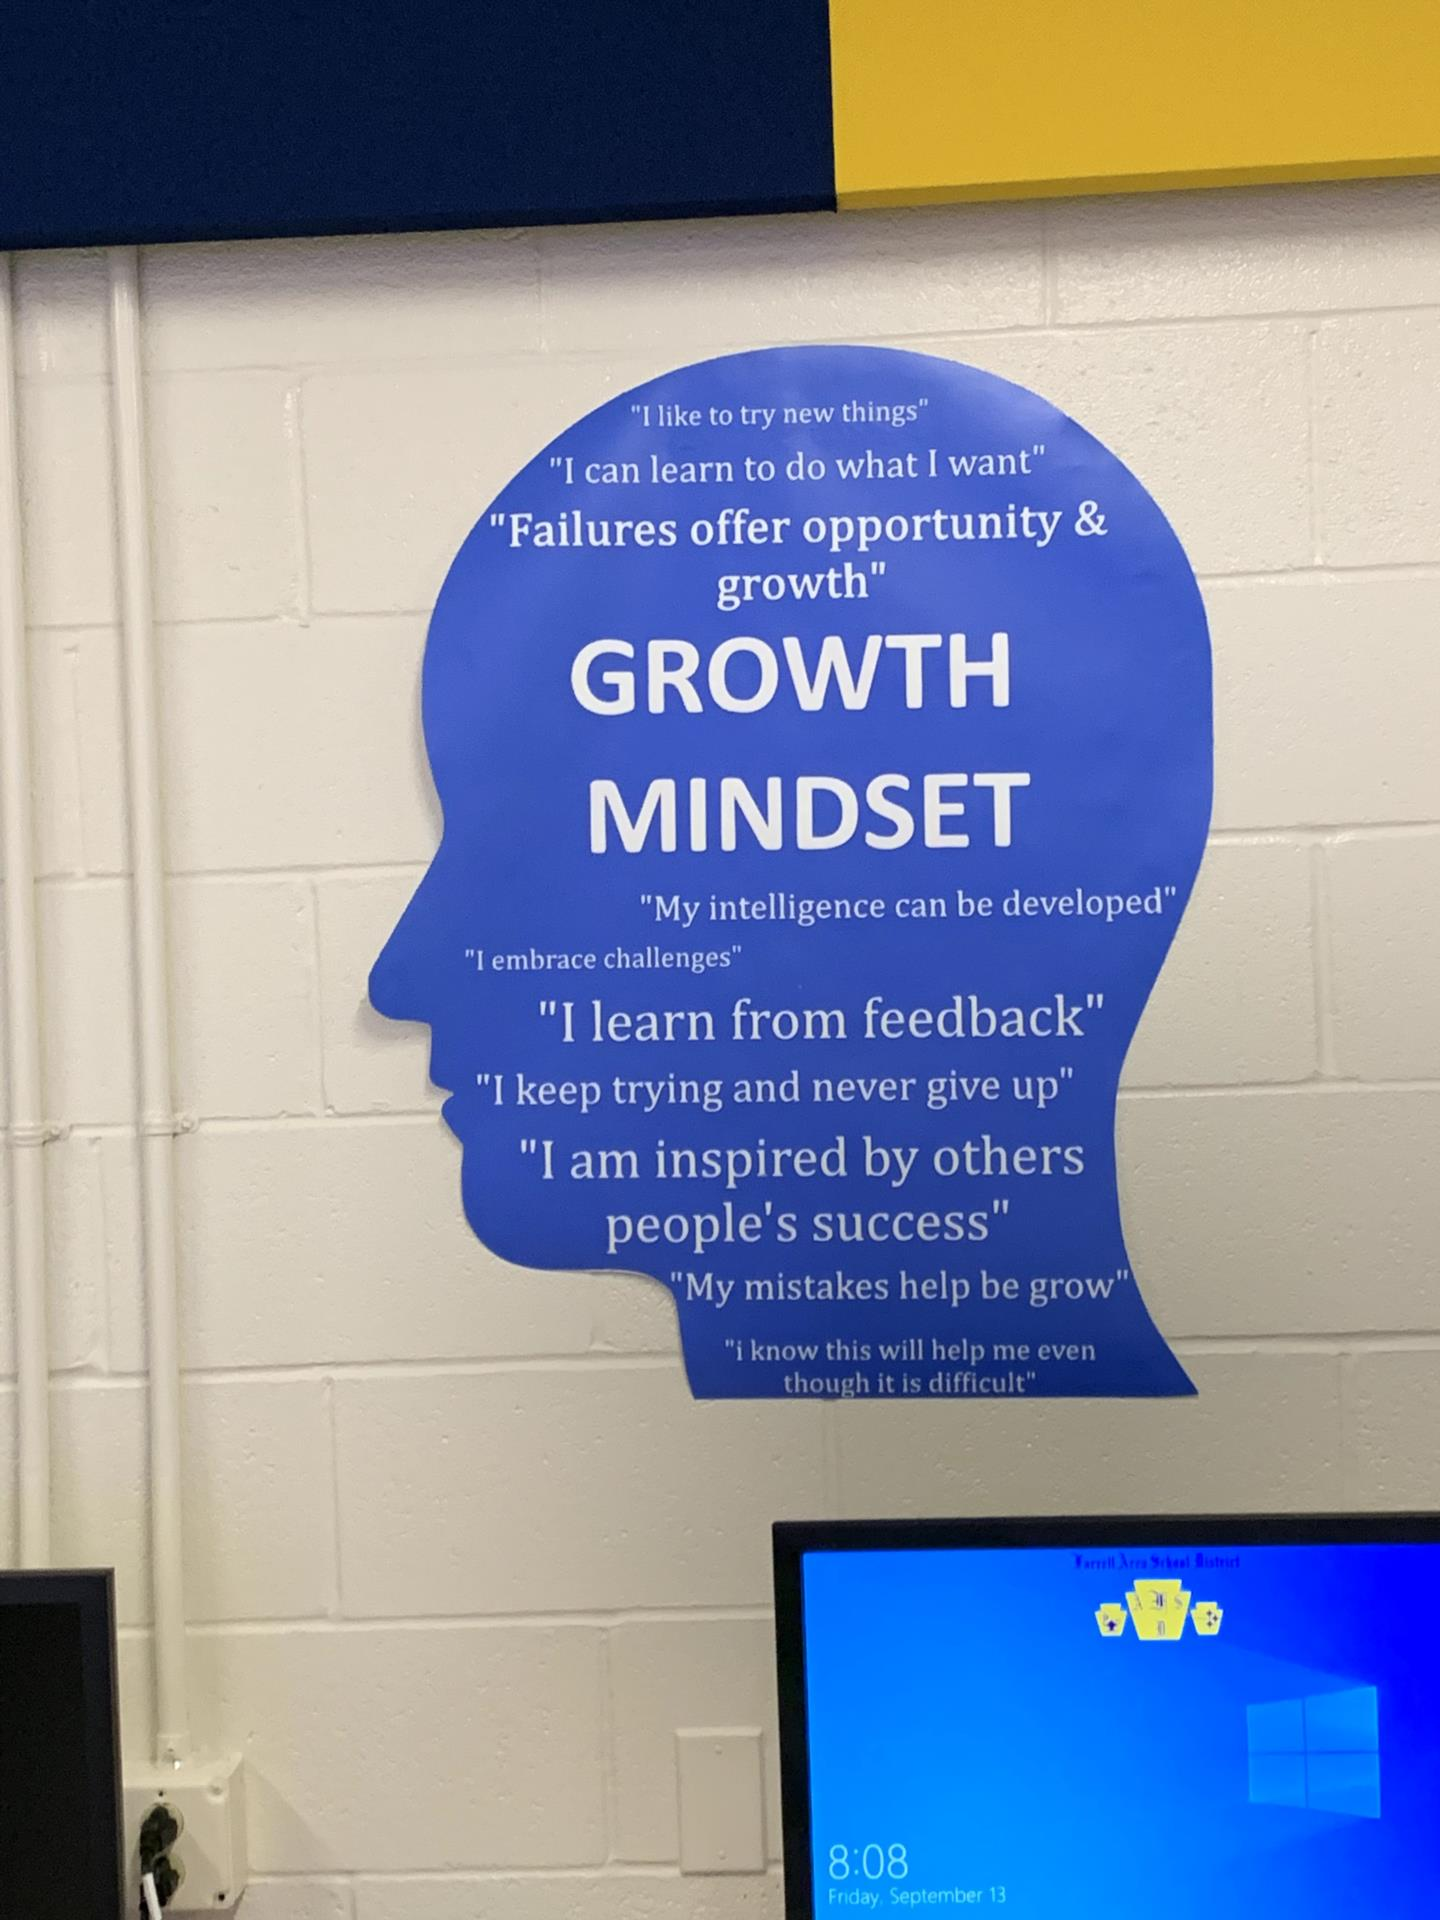 Growth mindset poster in the STEAM lab